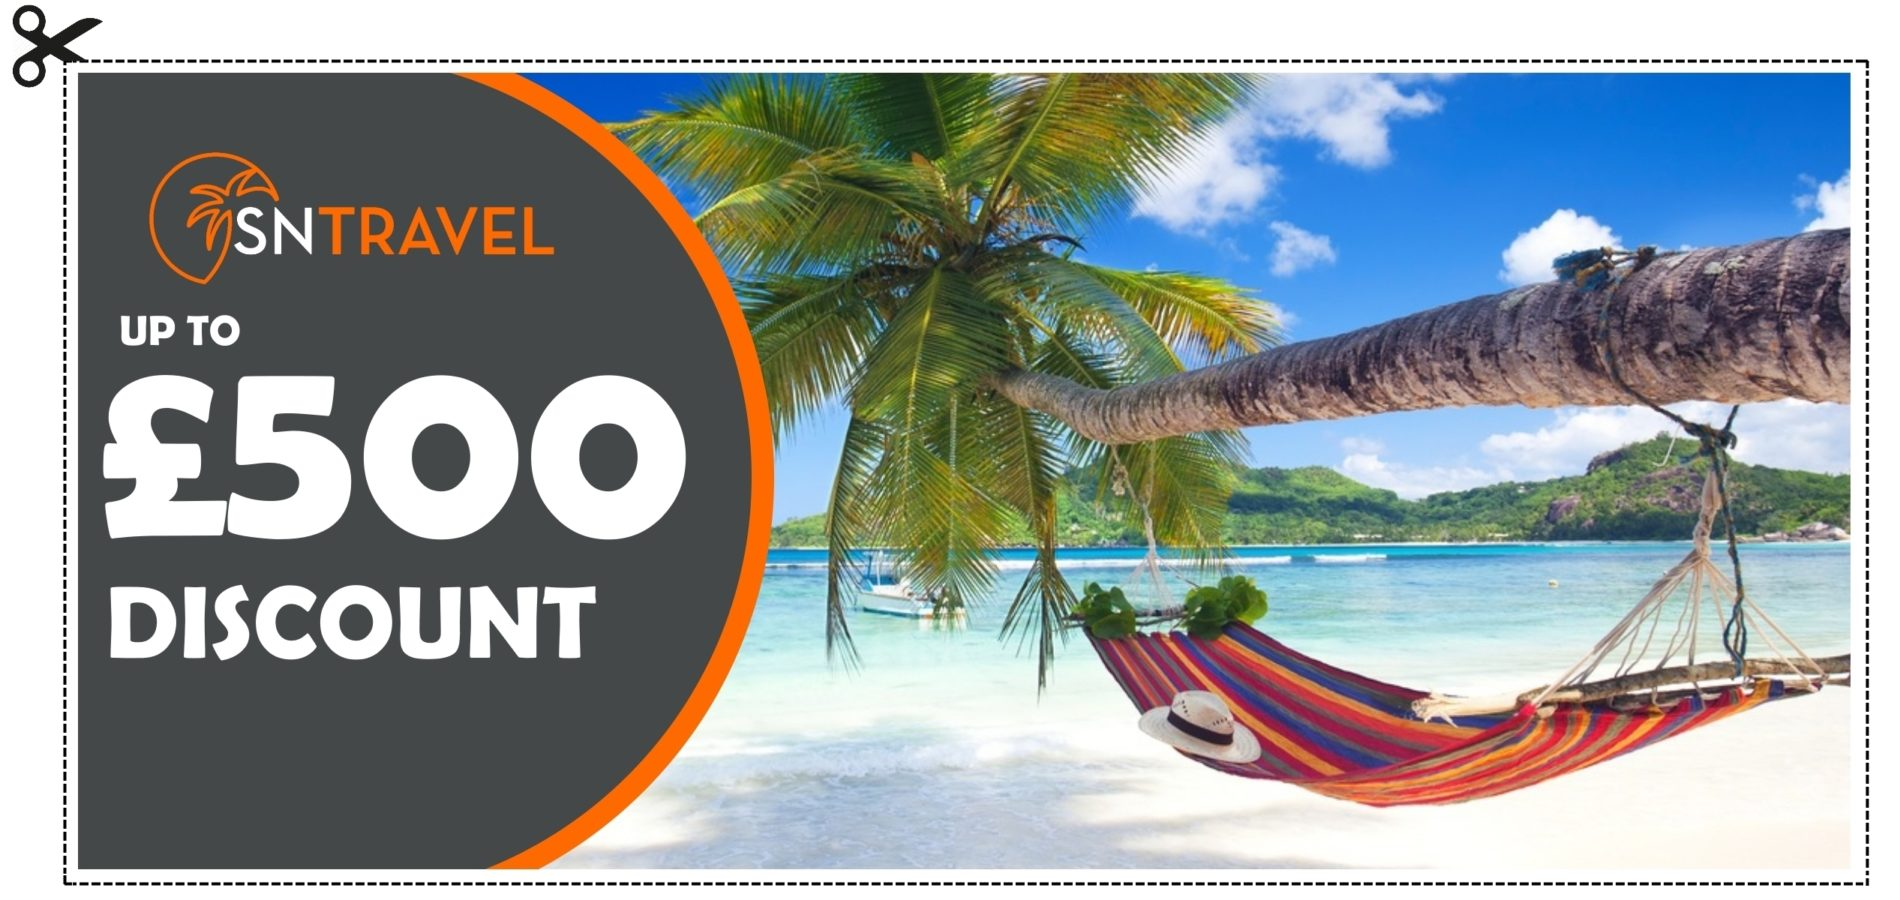 £500 travel voucher